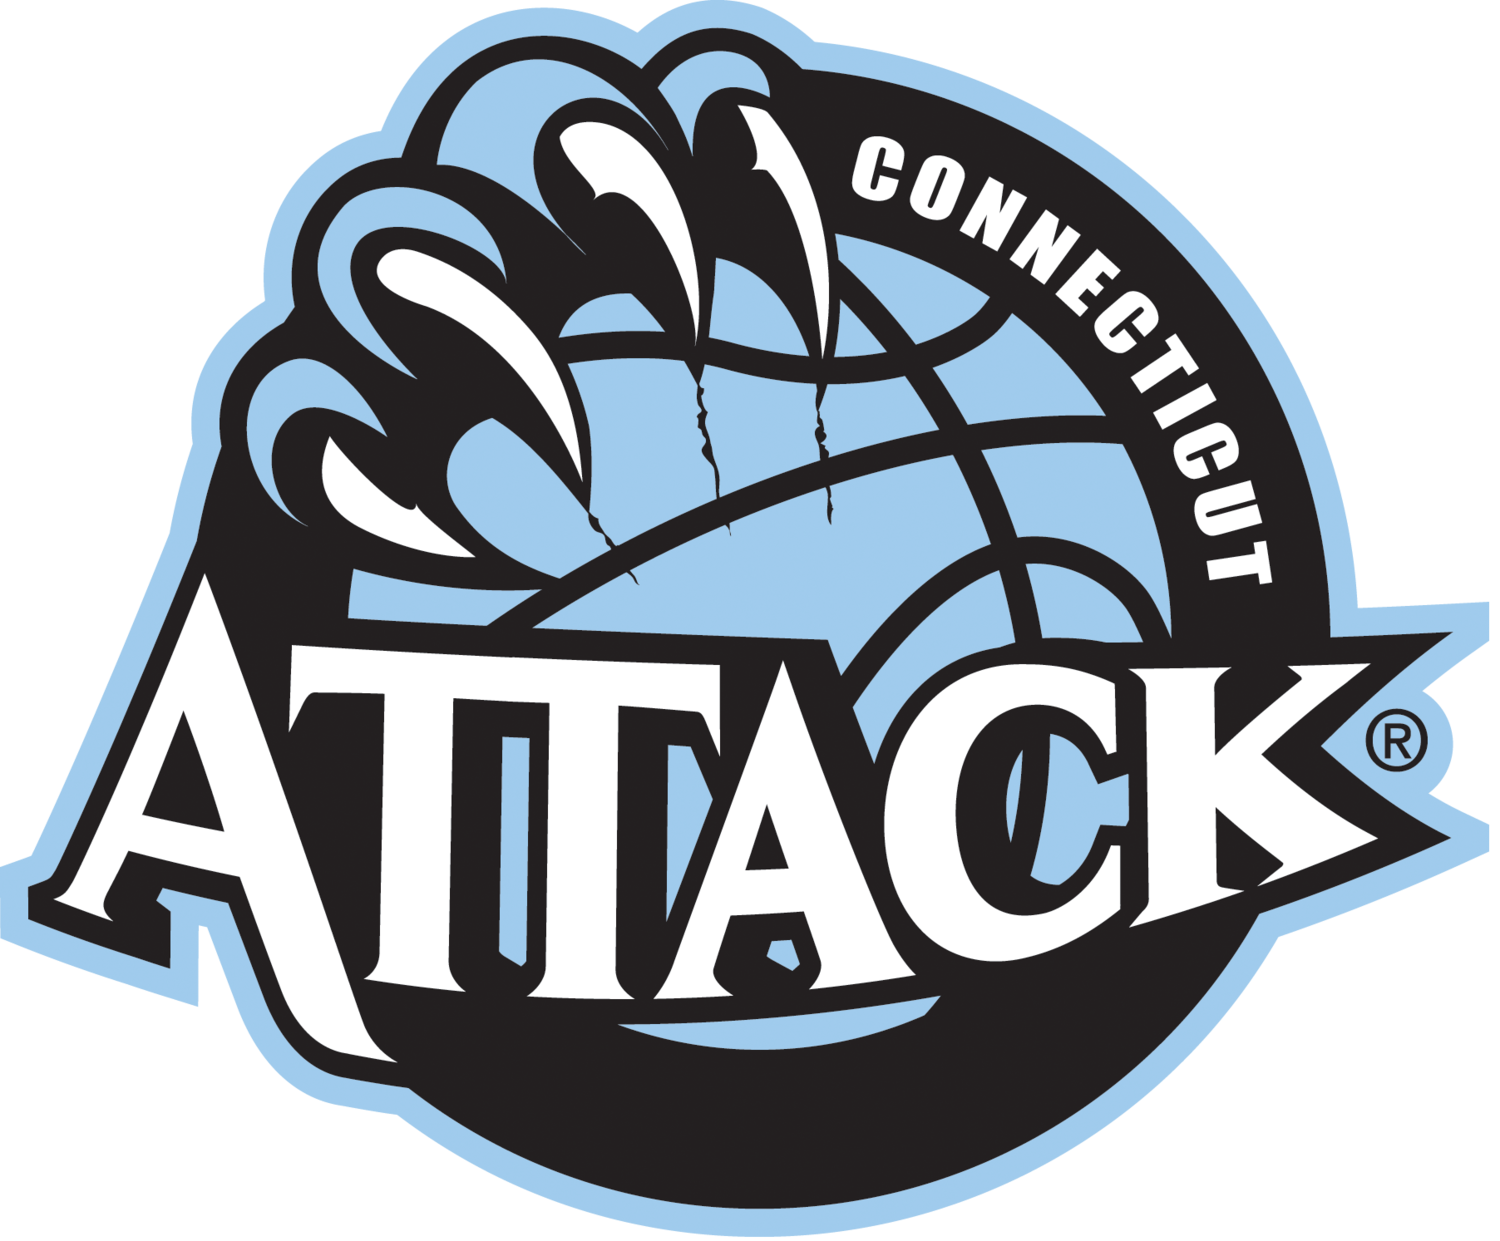 Connecticut Attack